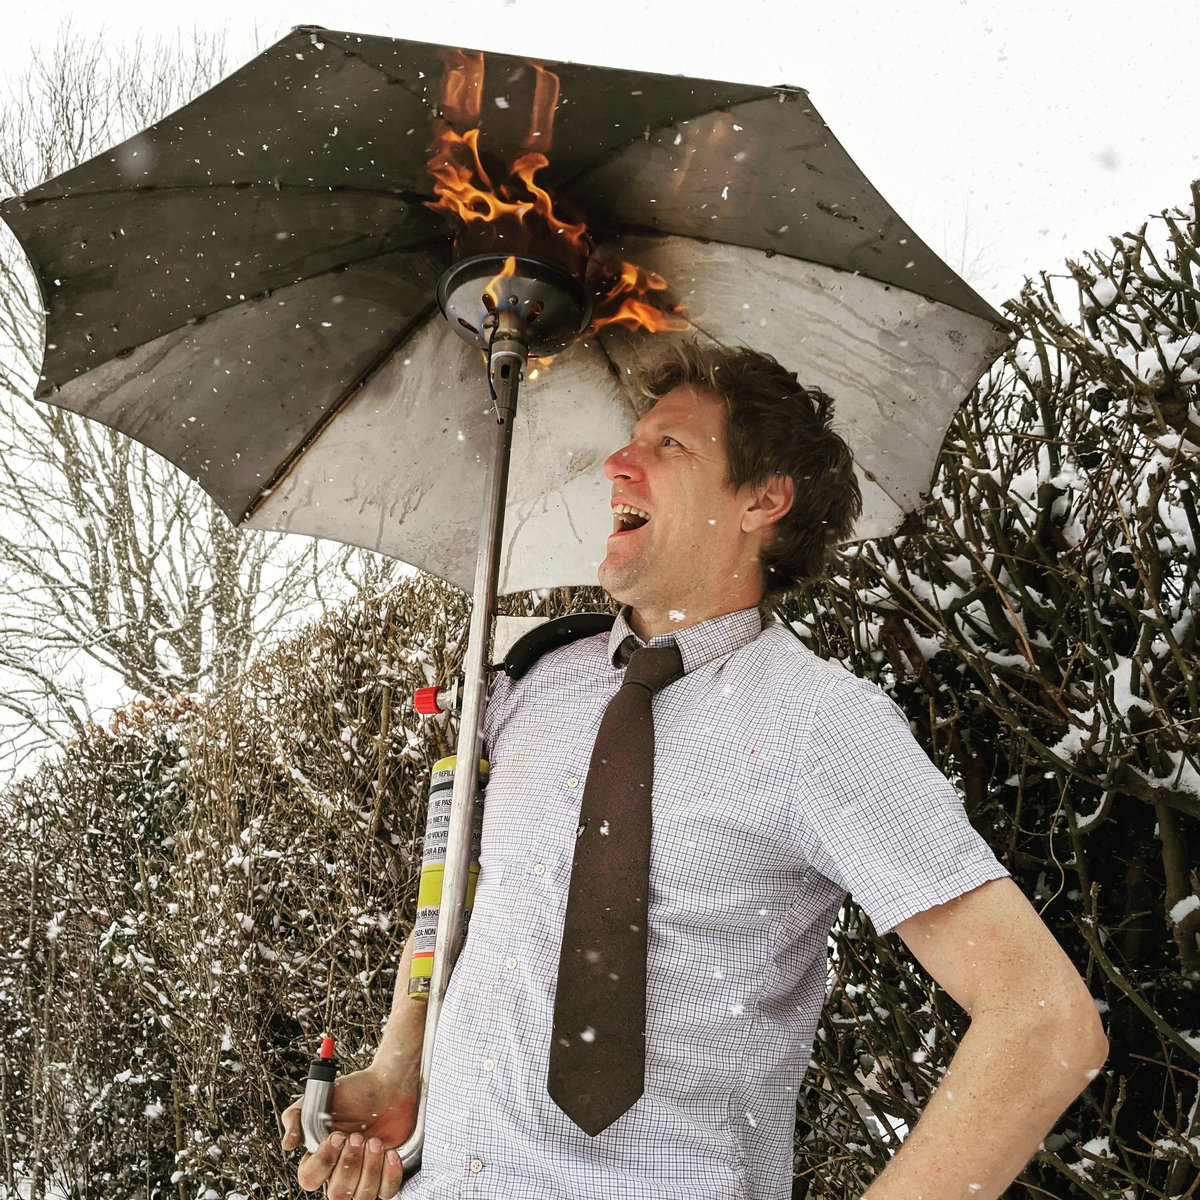 This definitely GAS HEATED UMBRELLA WEATHER lol. I made this a few years back but every now and then it just seems more appropriate.  #colinfurze  #heatedumbrella  #umbrella  #heated #snow #invention #gadget